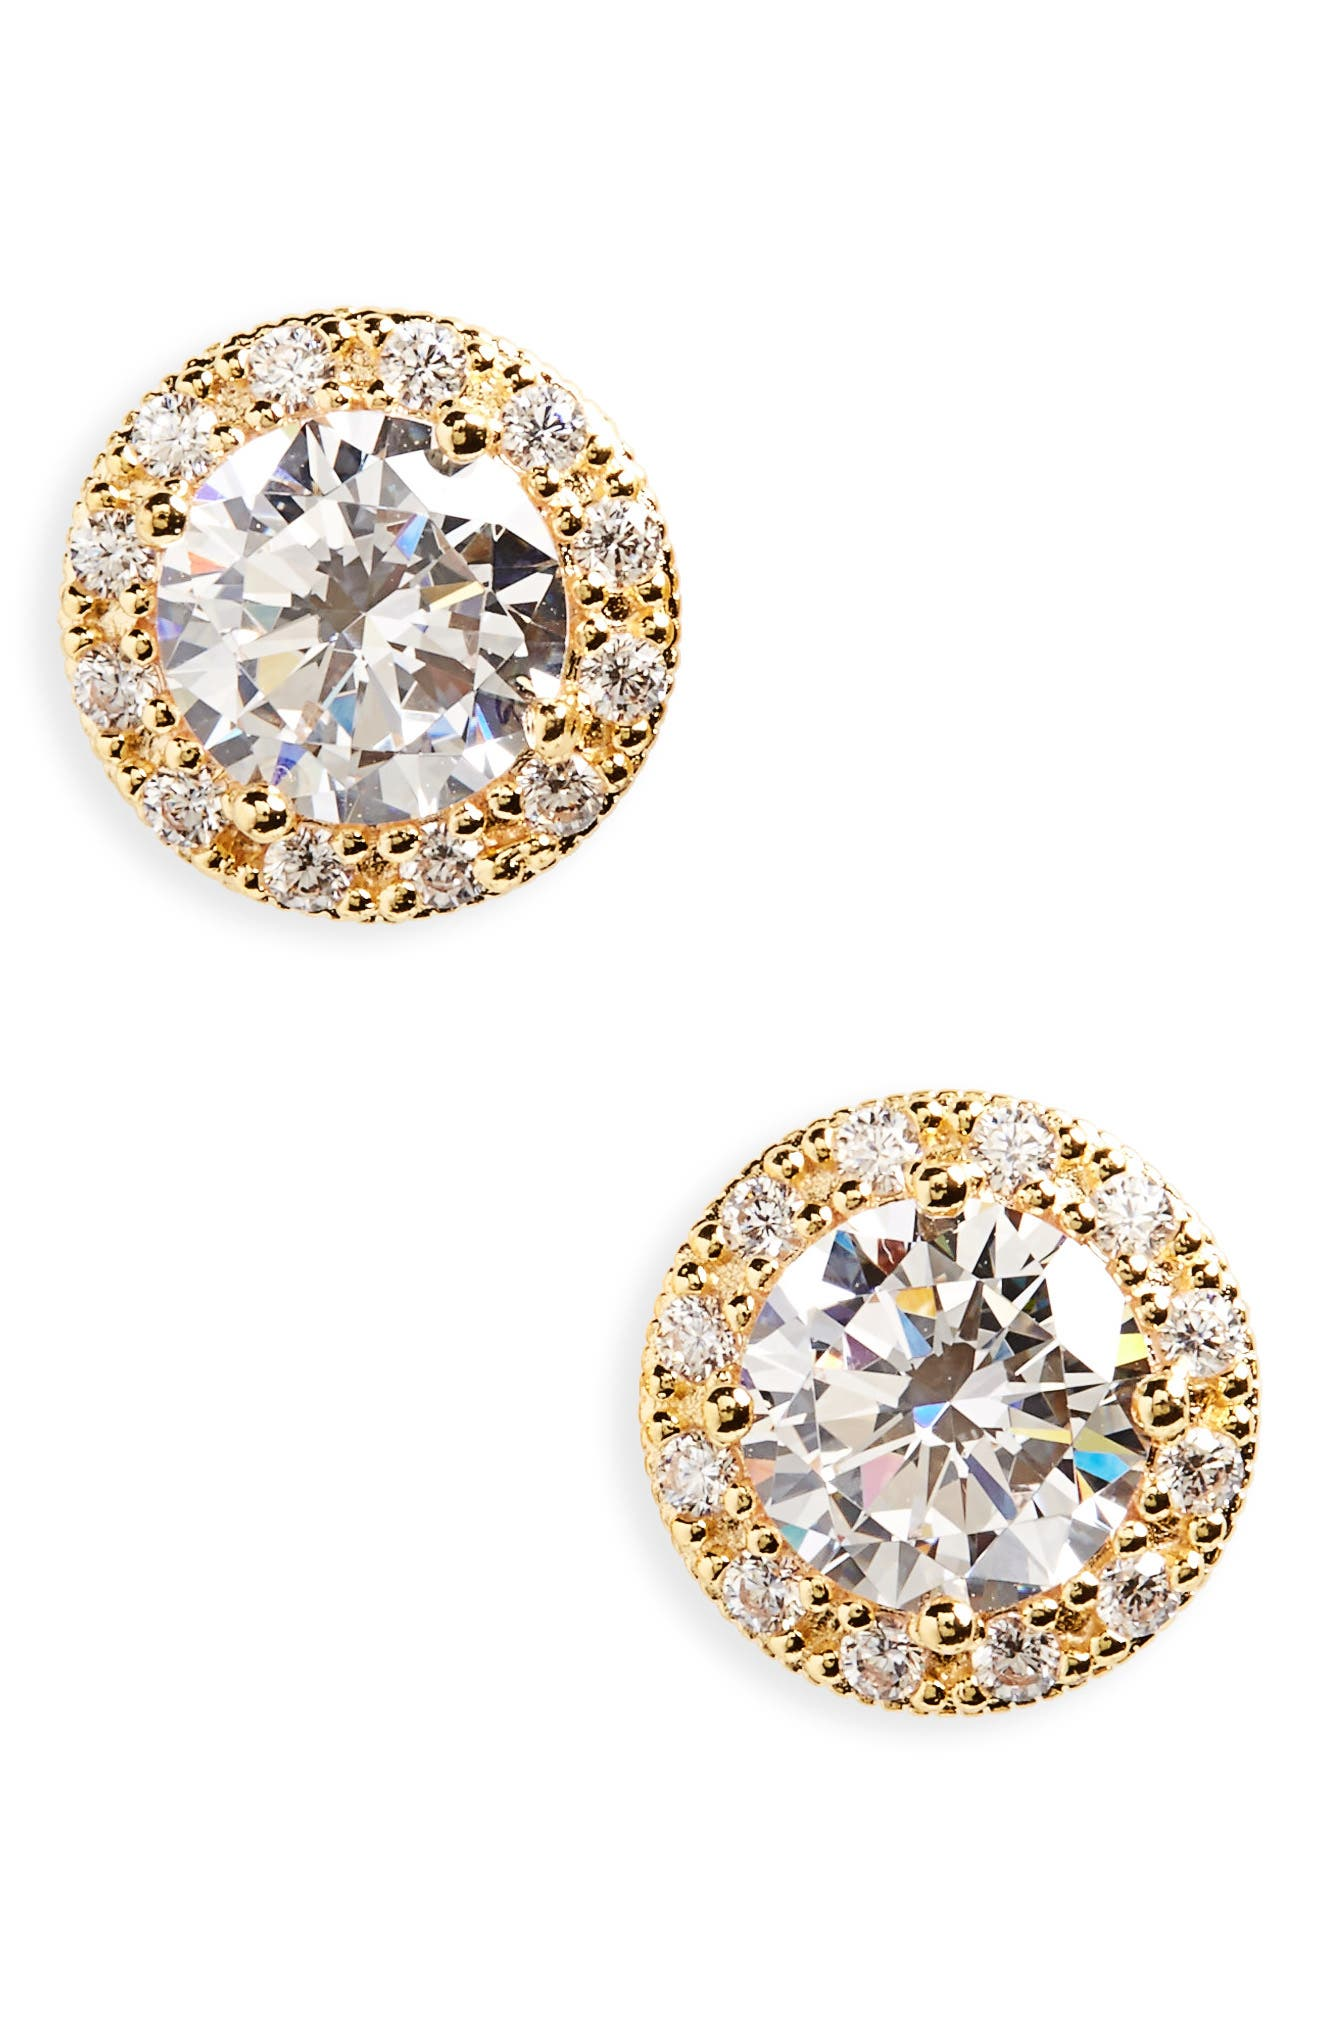 NORDSTROM, Pavé Stud Earrings, Main thumbnail 1, color, GOLD